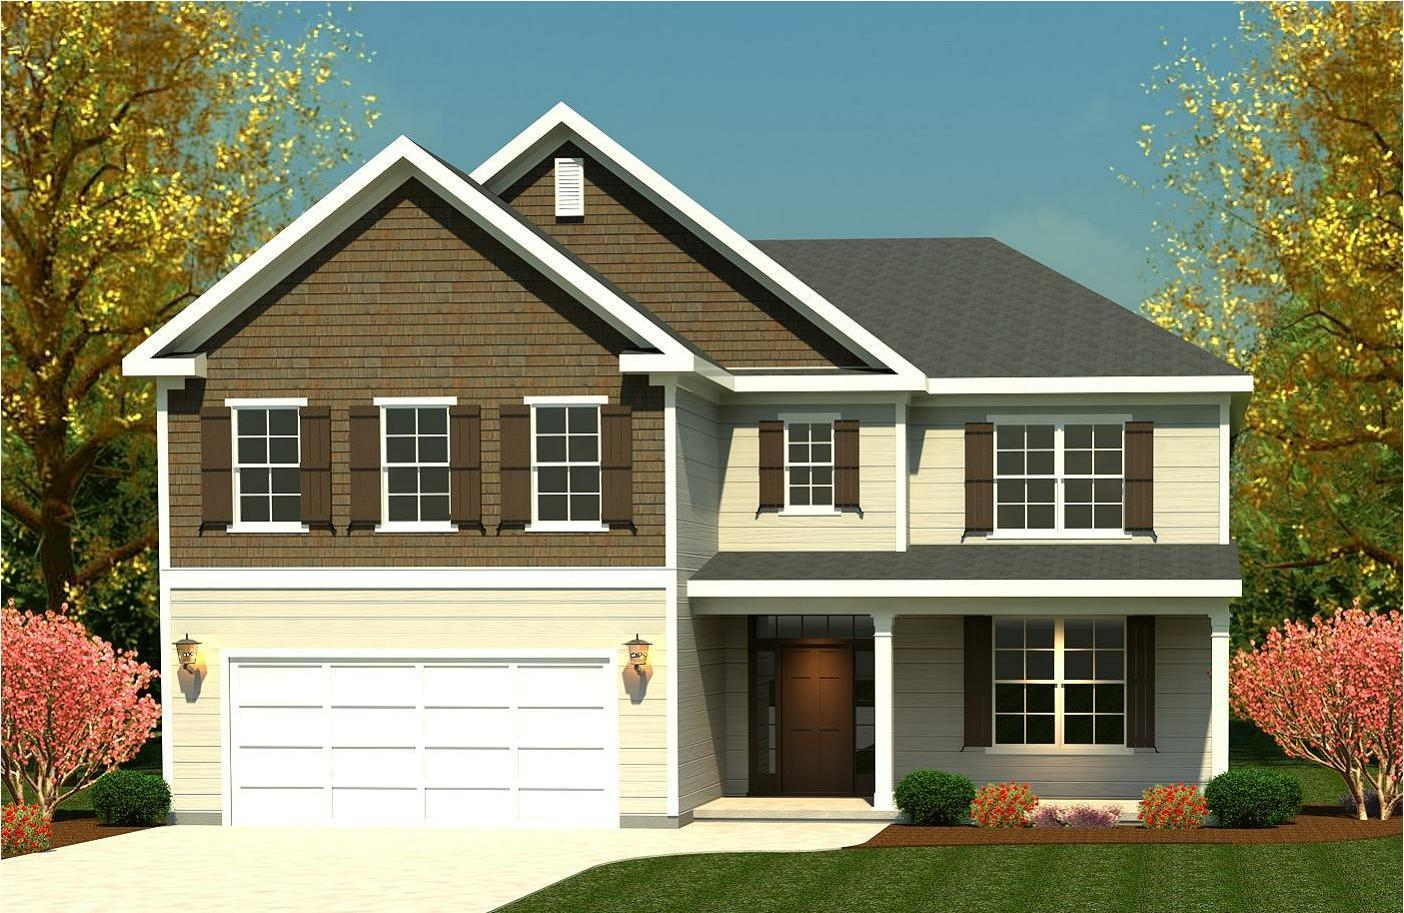 Exterior:3218 Townsend II A Ivey Residential Rendering